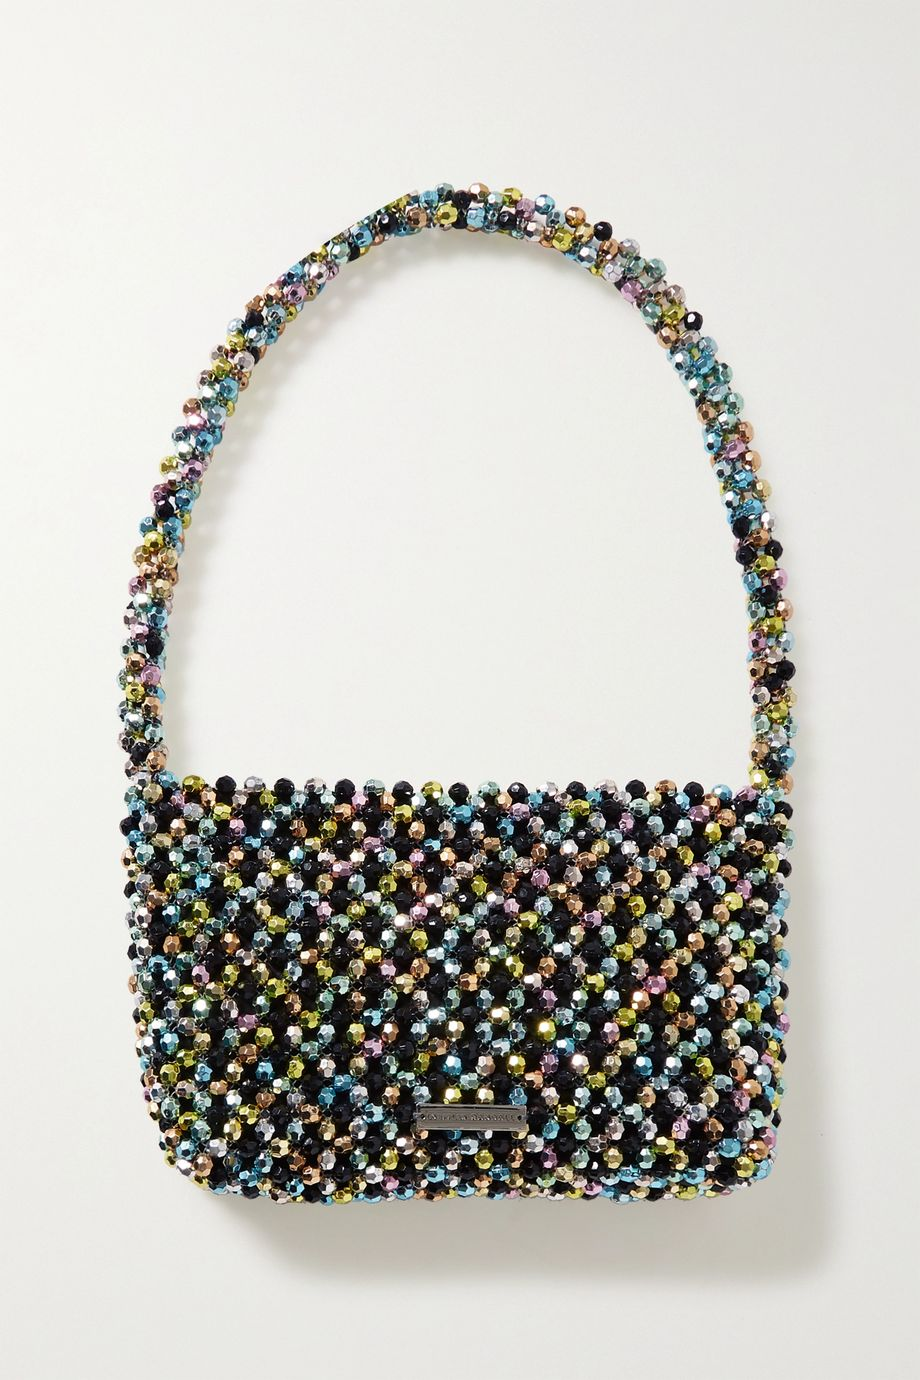 Loeffler Randall Marleigh beaded satin shoulder bag